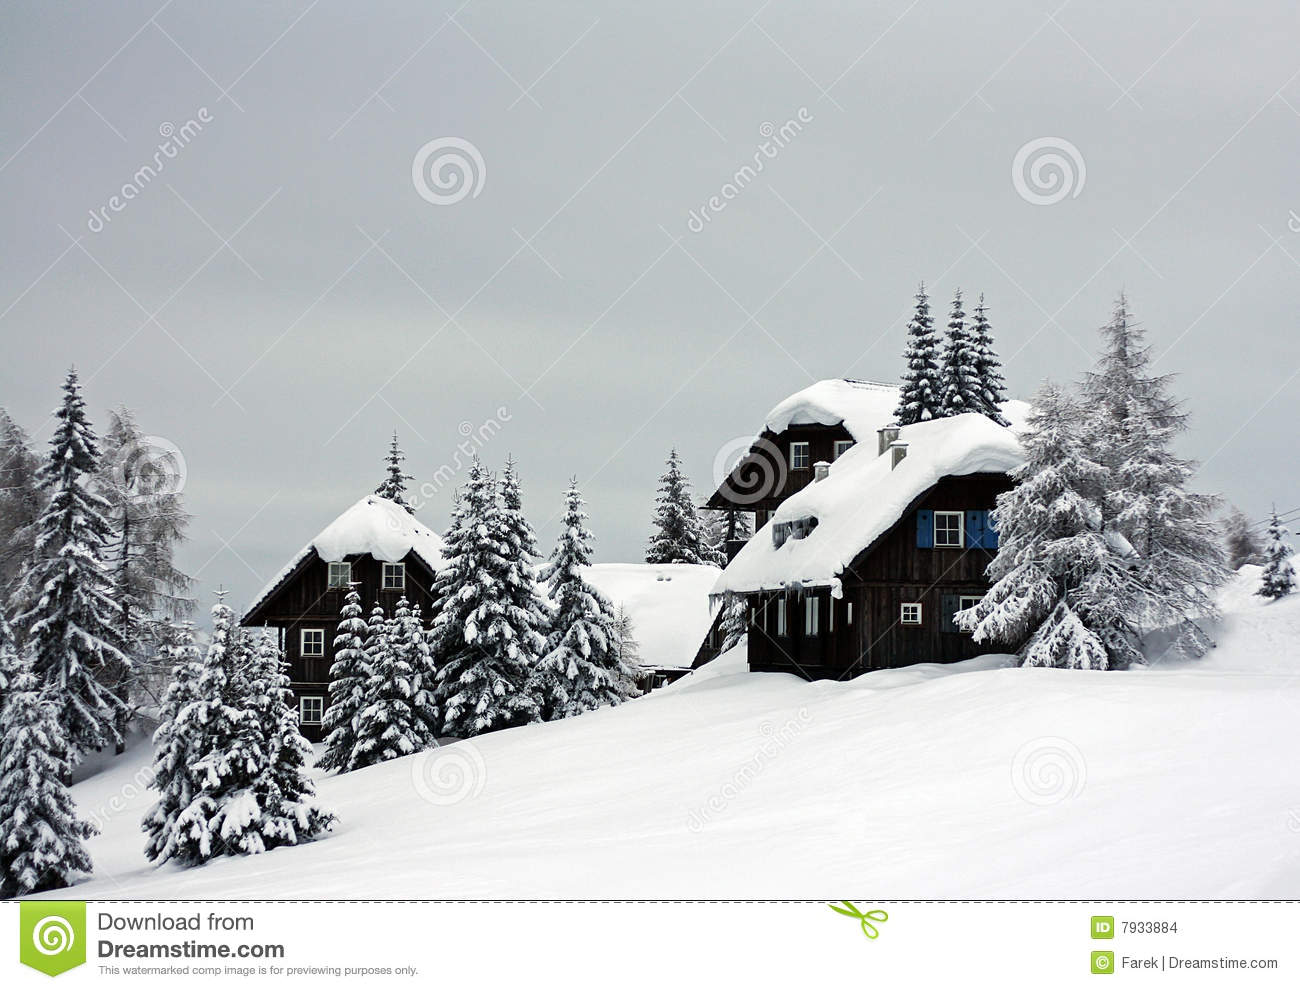 Alpine cottages